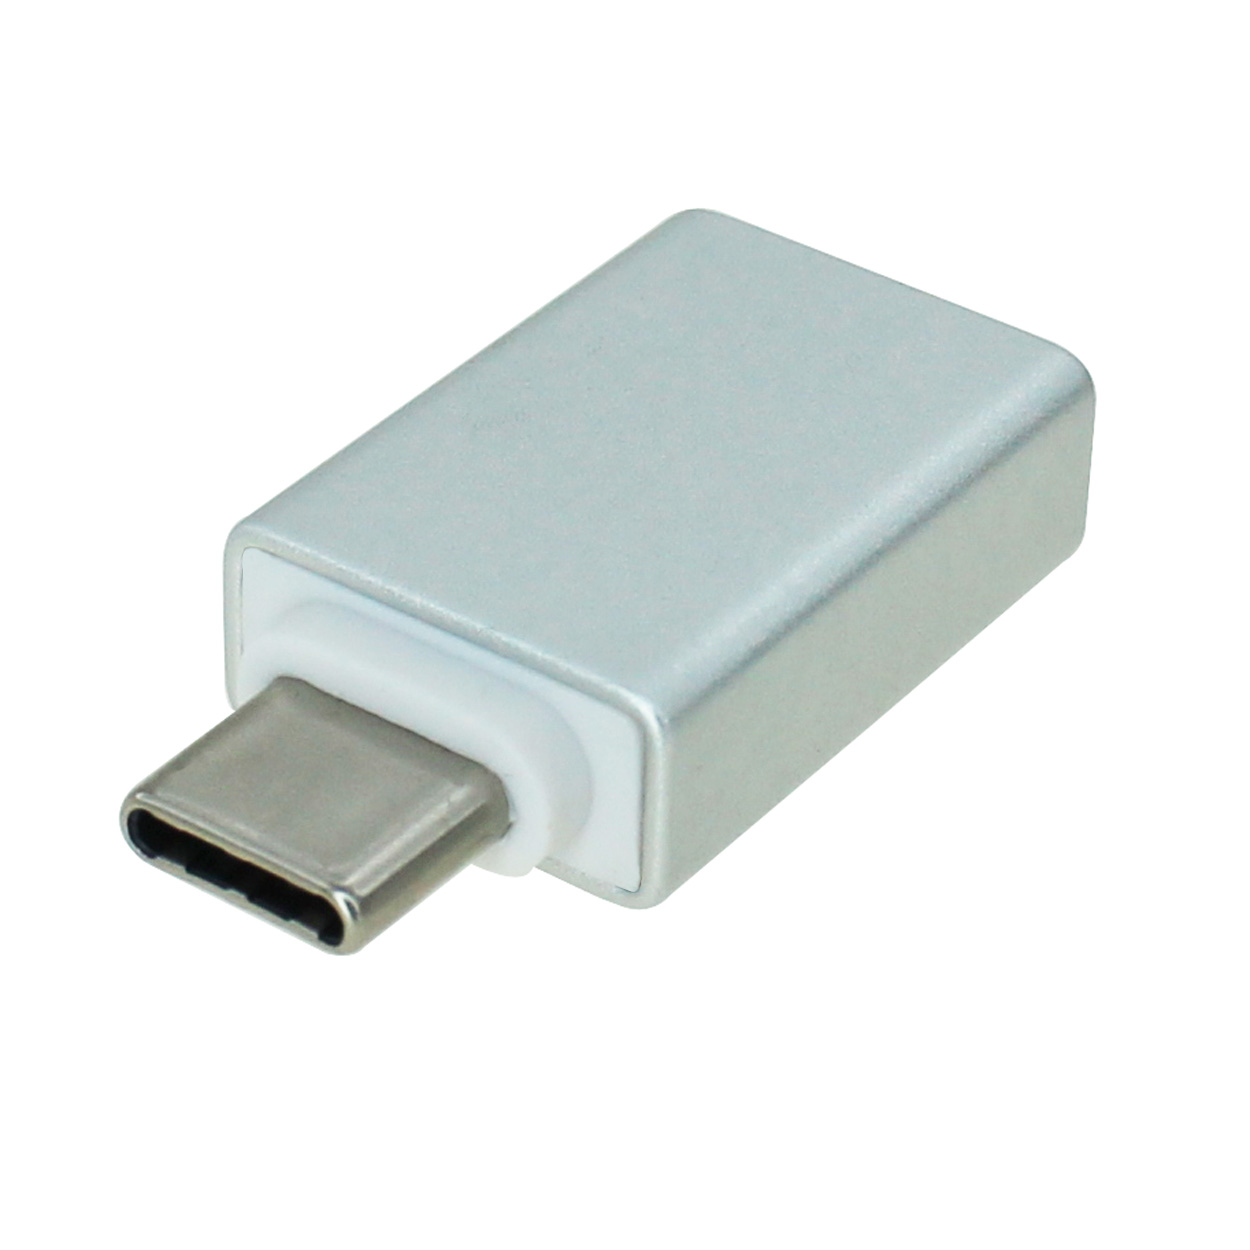 USB 3.0 USB-C Male to USB A Female Adapter, Aluminum Shell